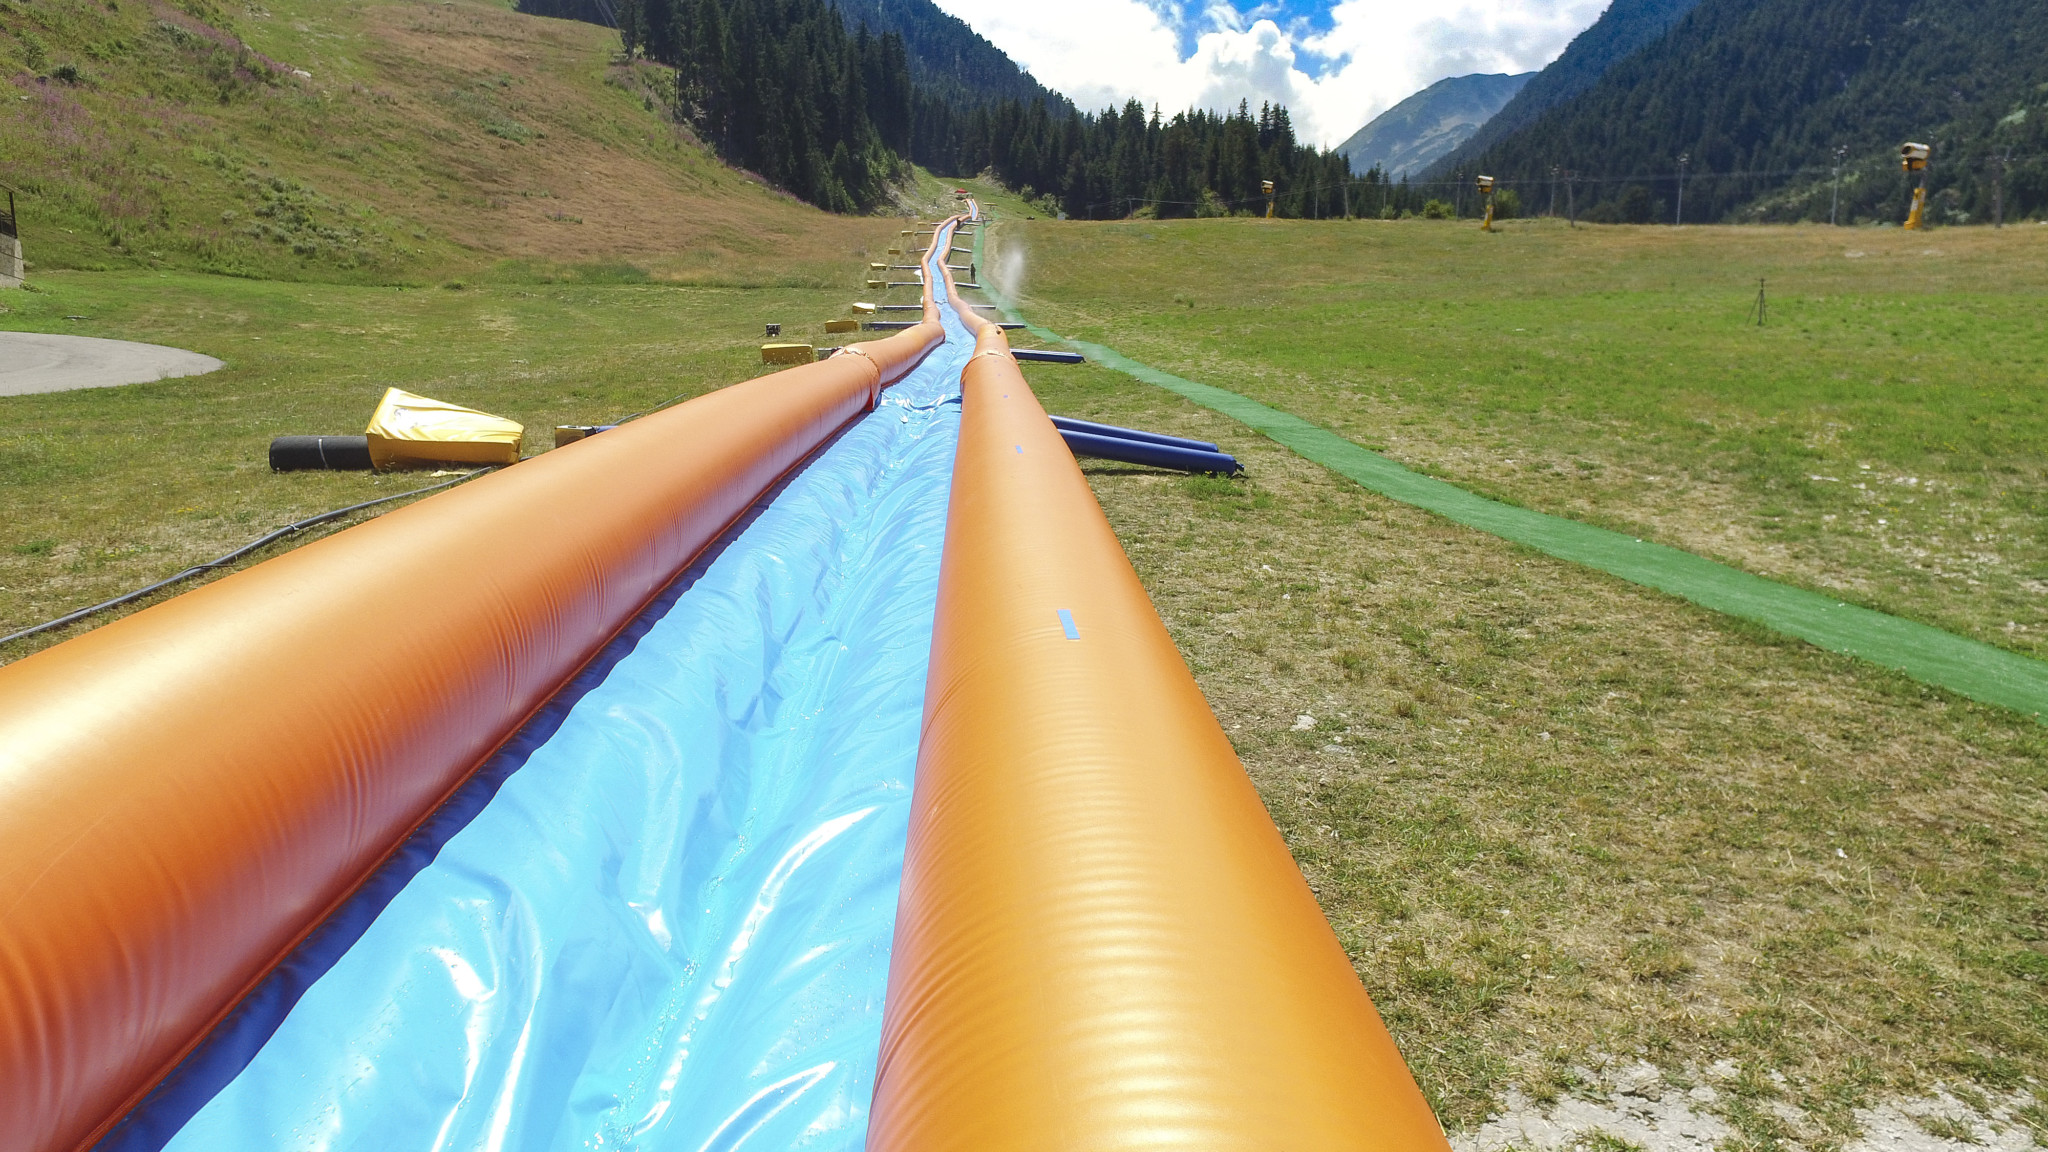 Insurance for Summer Tubing and Alpine Slides